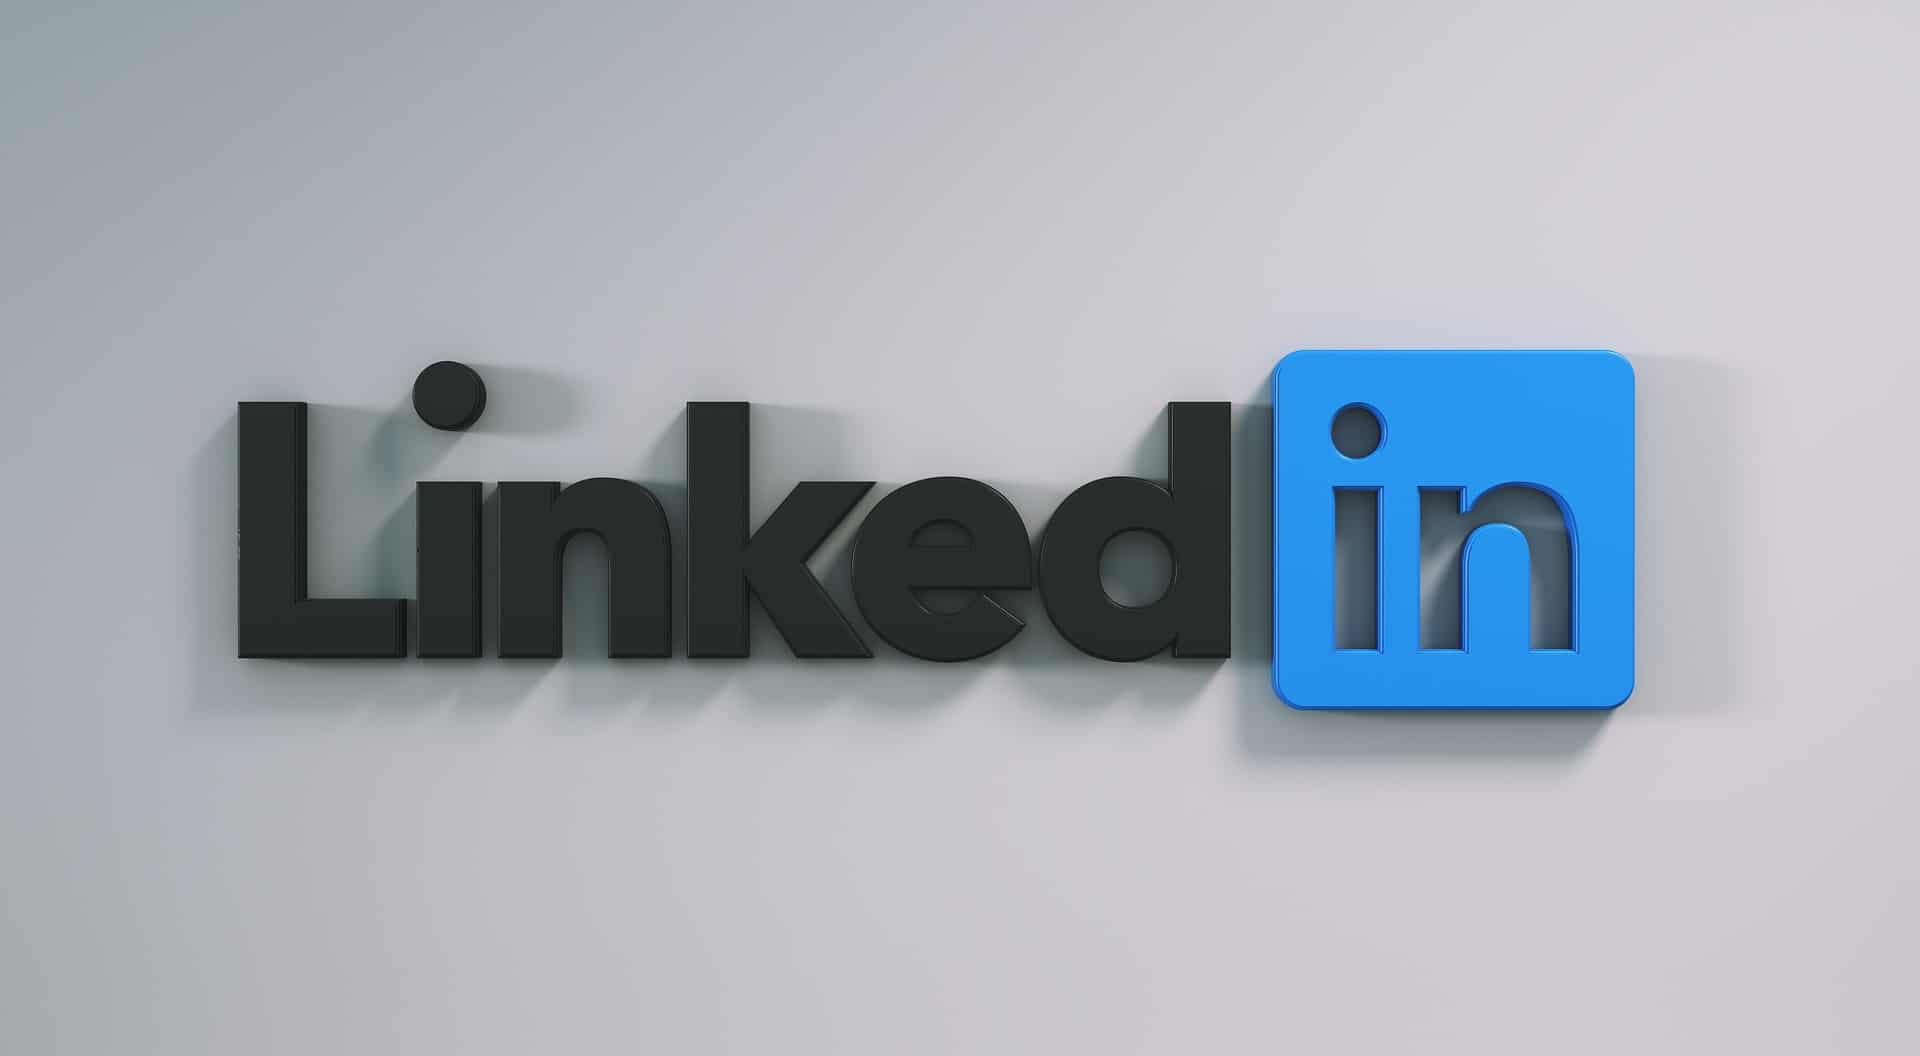 Stand Out Your LinkedIn Profile with these Simple Hacks